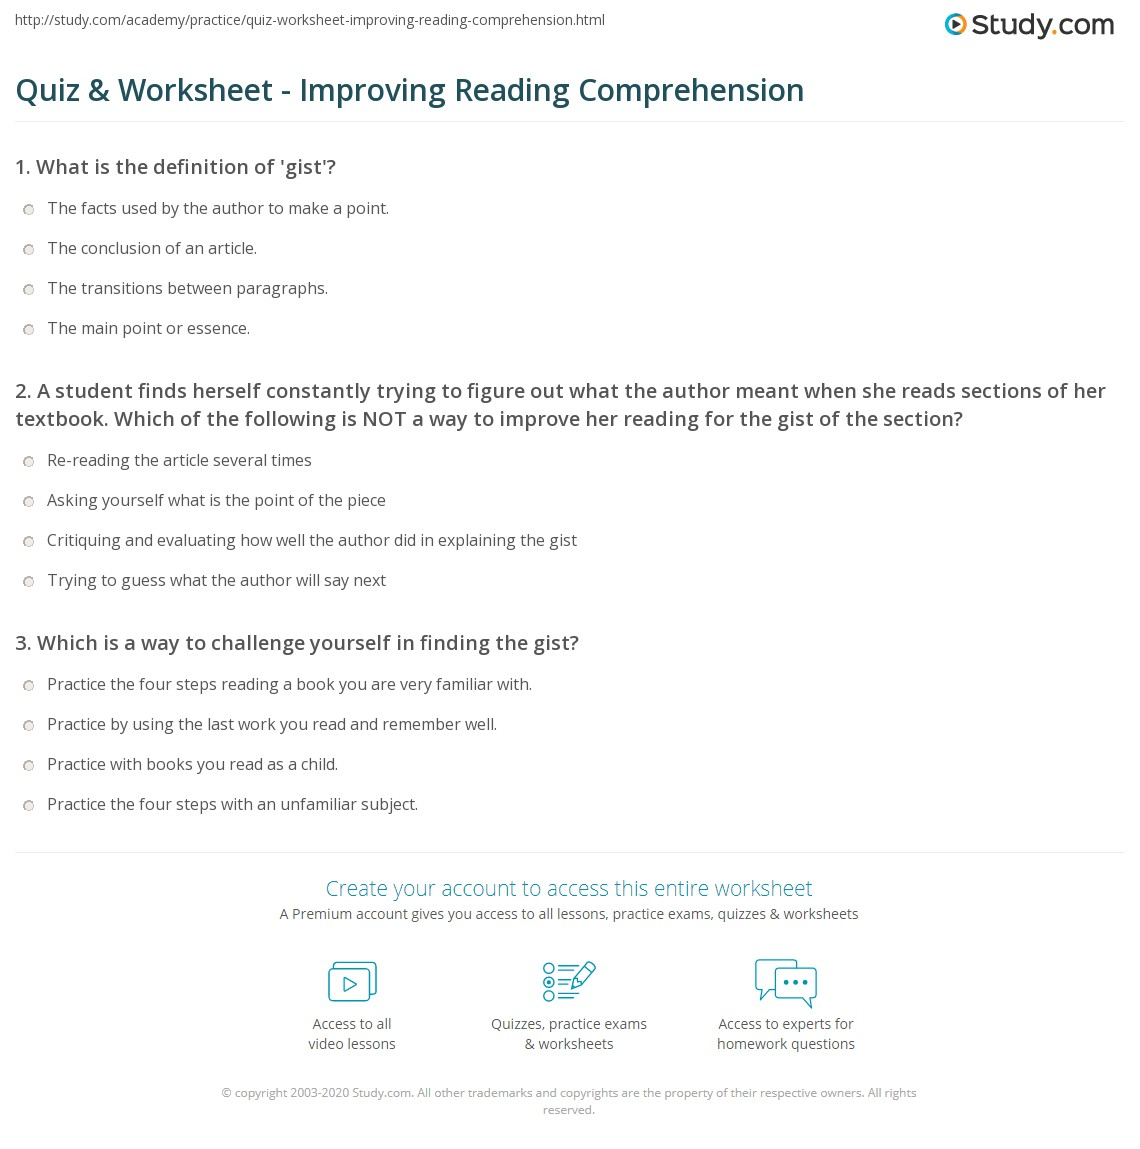 Worksheets Paragraph Comprehension Worksheets quiz worksheet improving reading comprehension study com 1 a student finds herself constantly trying to figure out what the author meant when she reads sections of her textbook which f